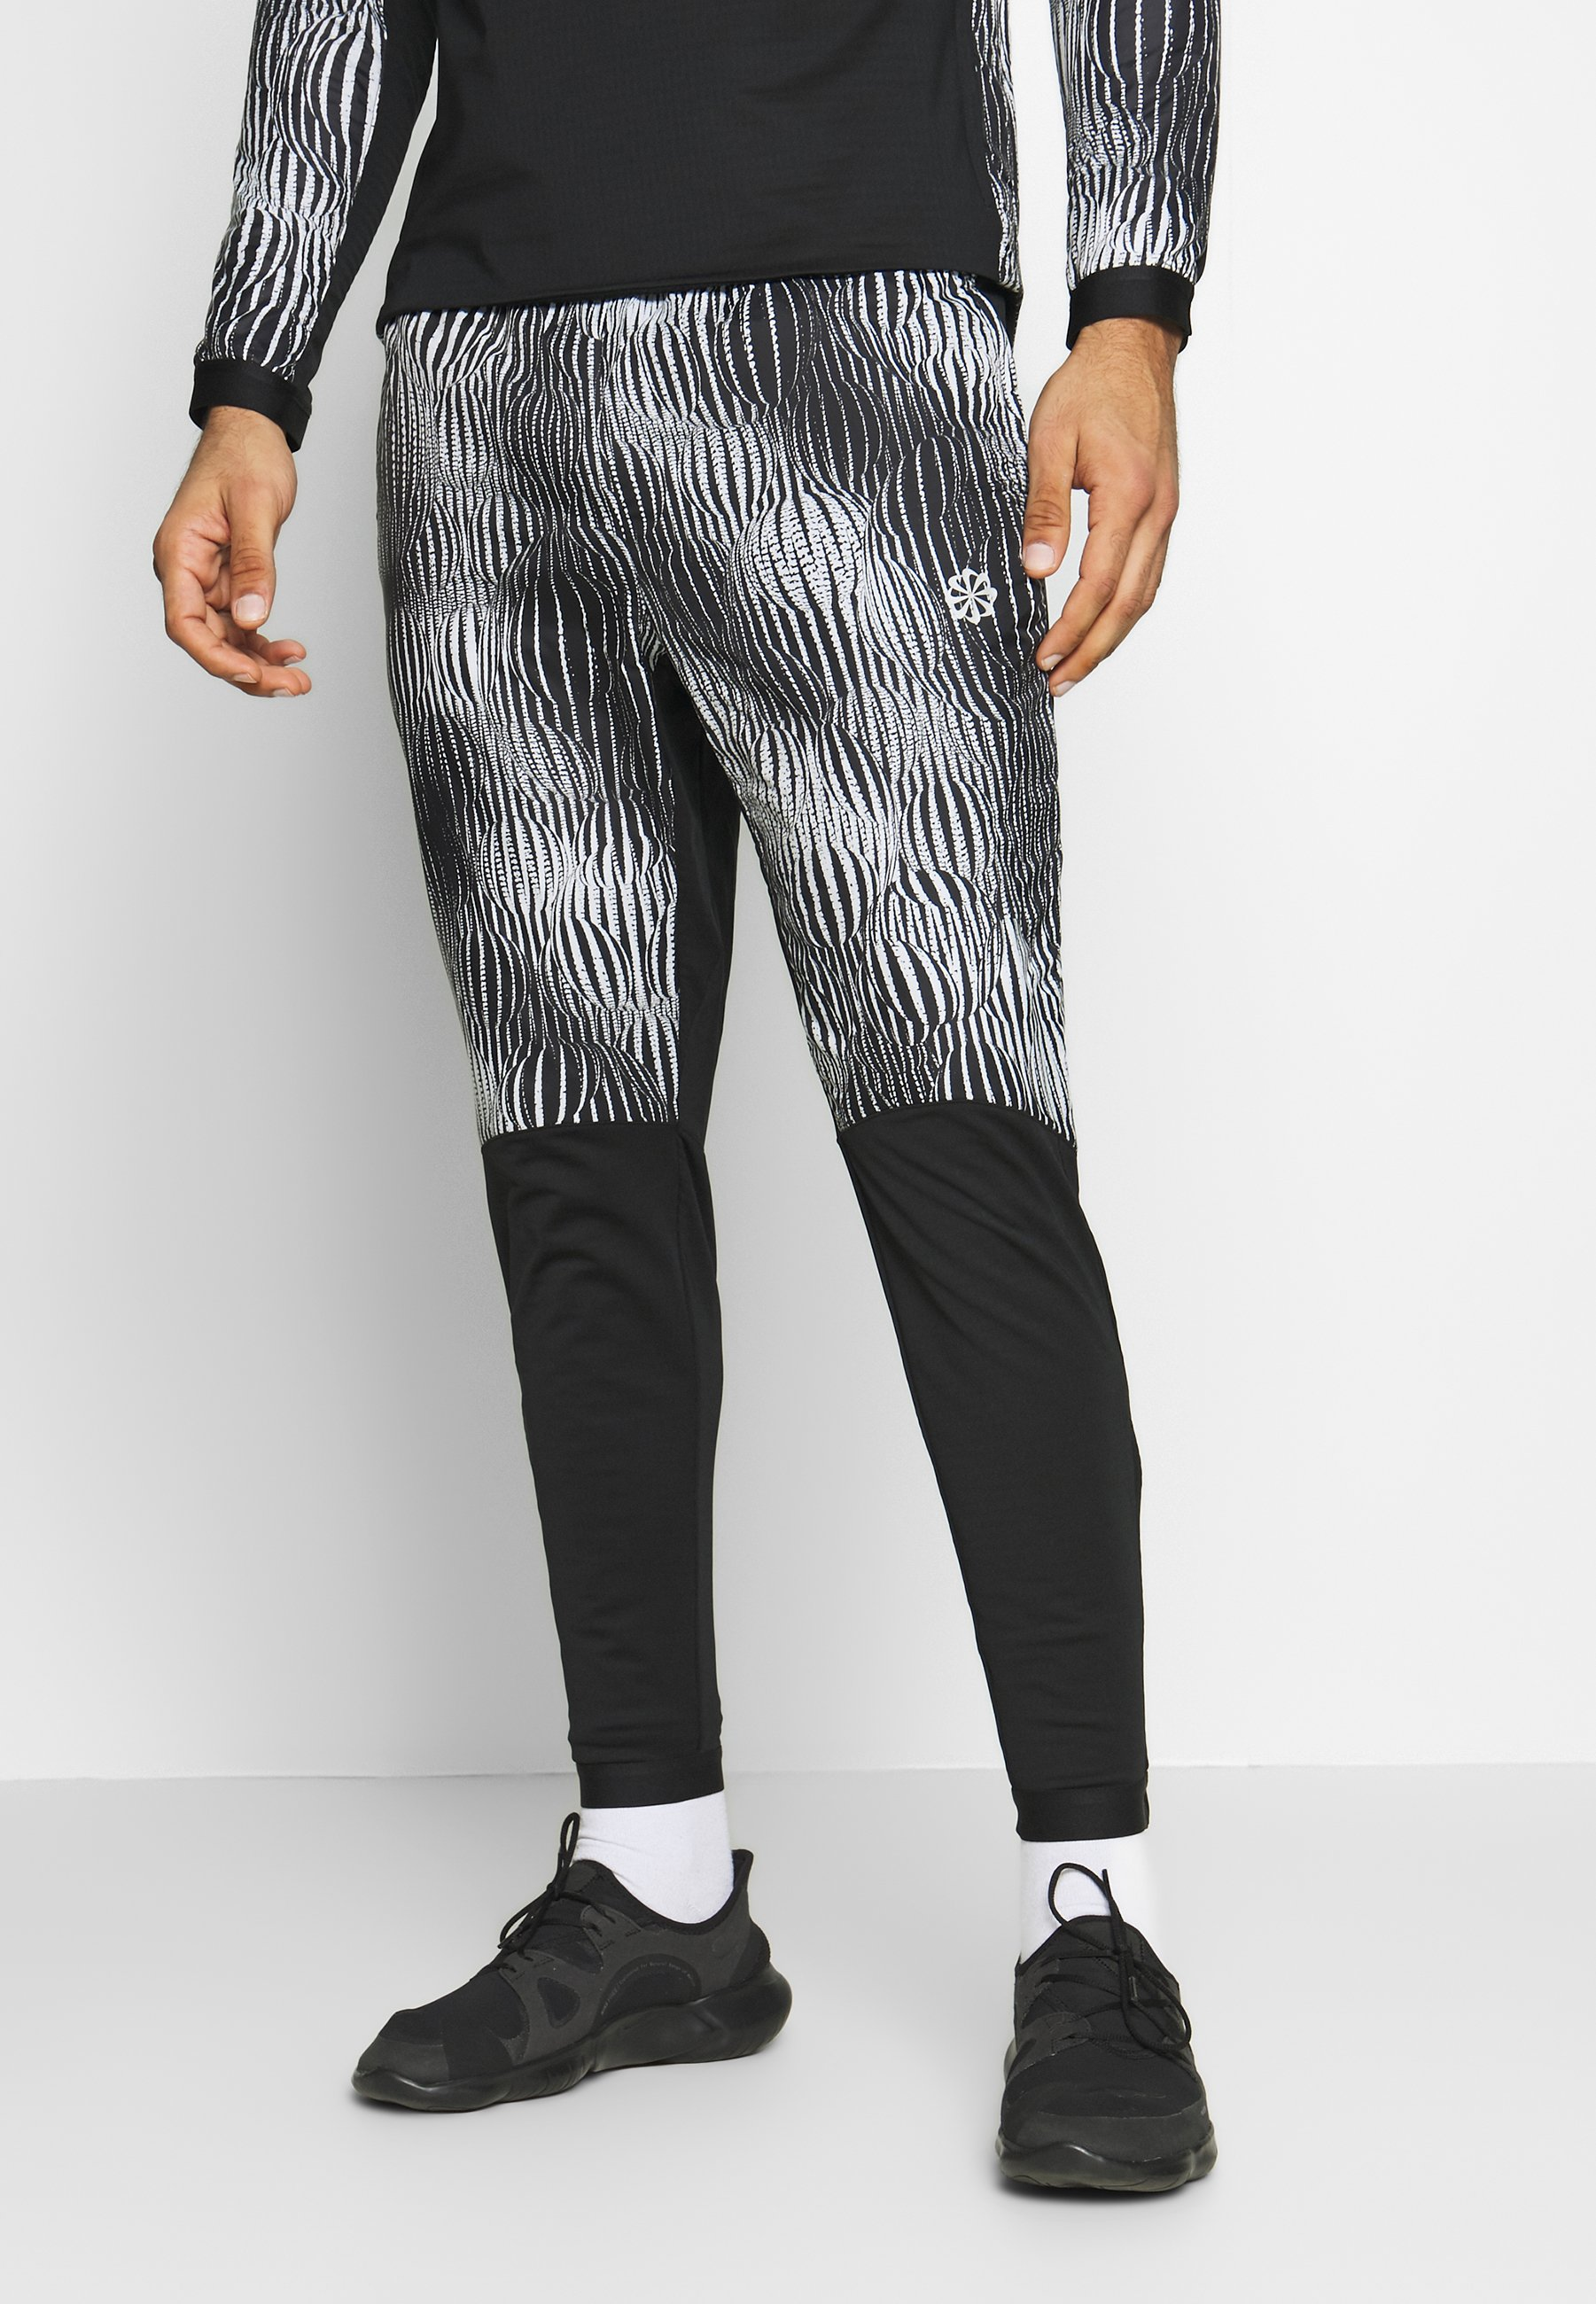 TRK WRM PR FF Pantalon de survêtement blacksilver